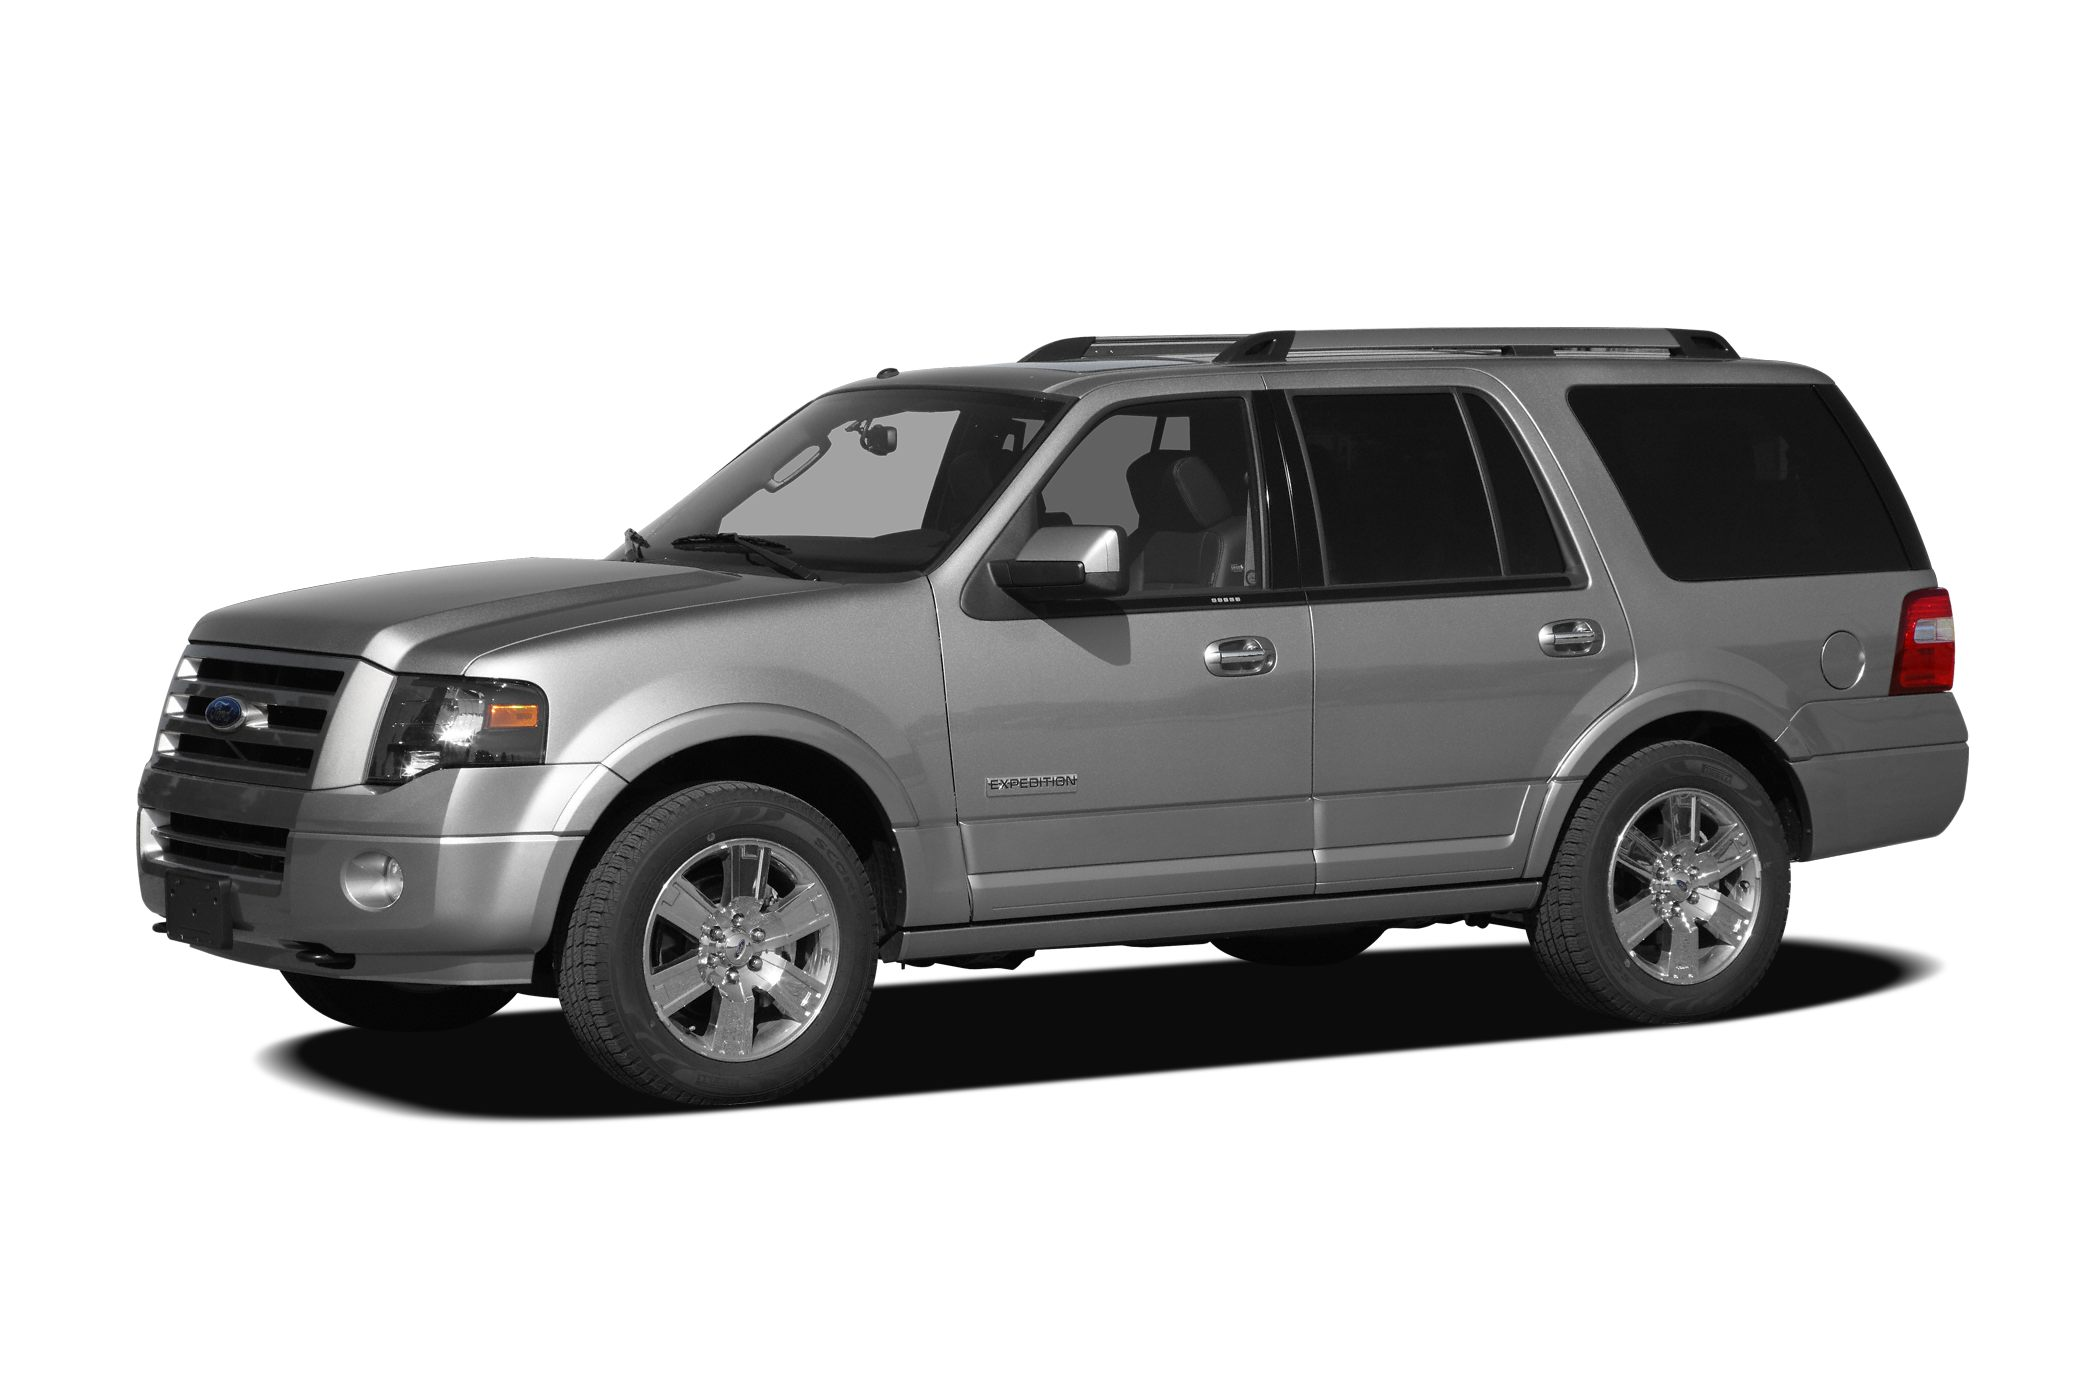 2007 Ford Expedition Limited Miles 174850Color White Stock CU58406A VIN 1FMFU20597LA97127